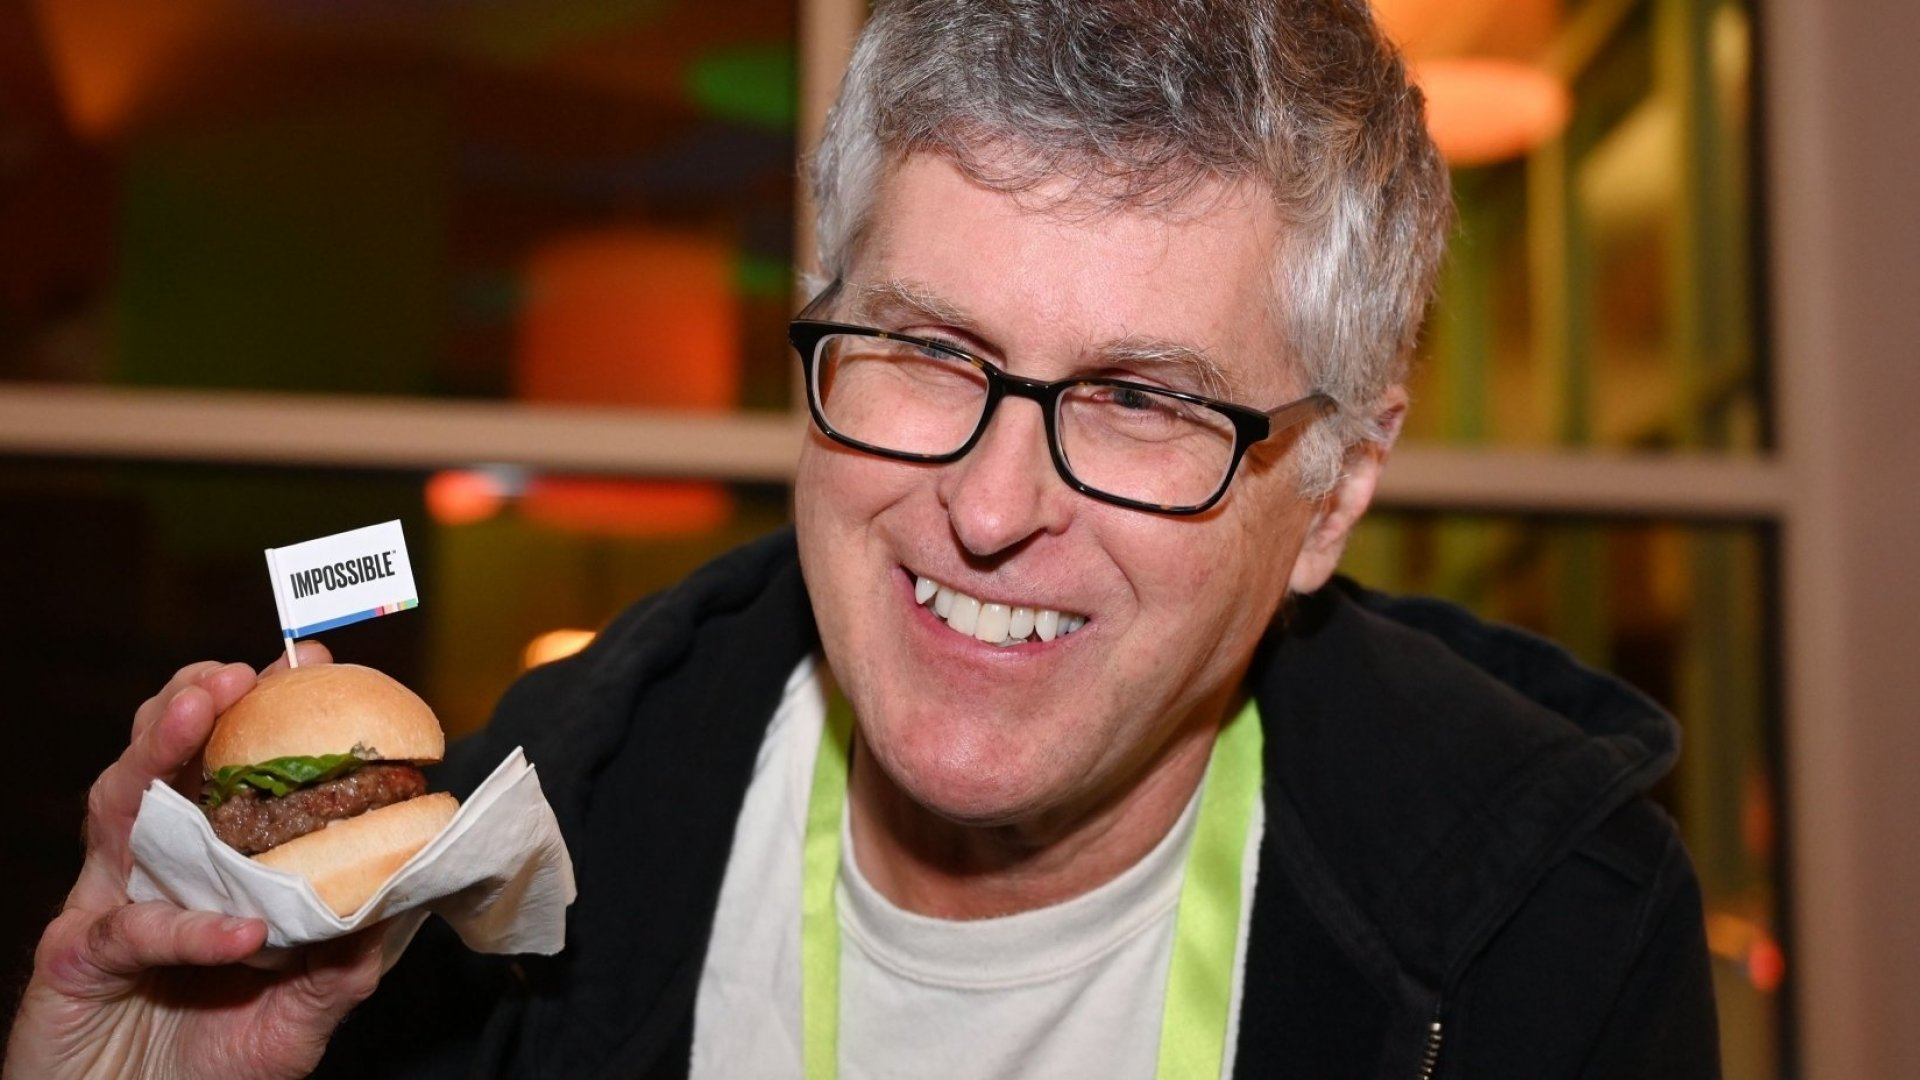 Impossible Foods Founder and CEO on Why His Company Doesn't Do Annual Planning Anymore